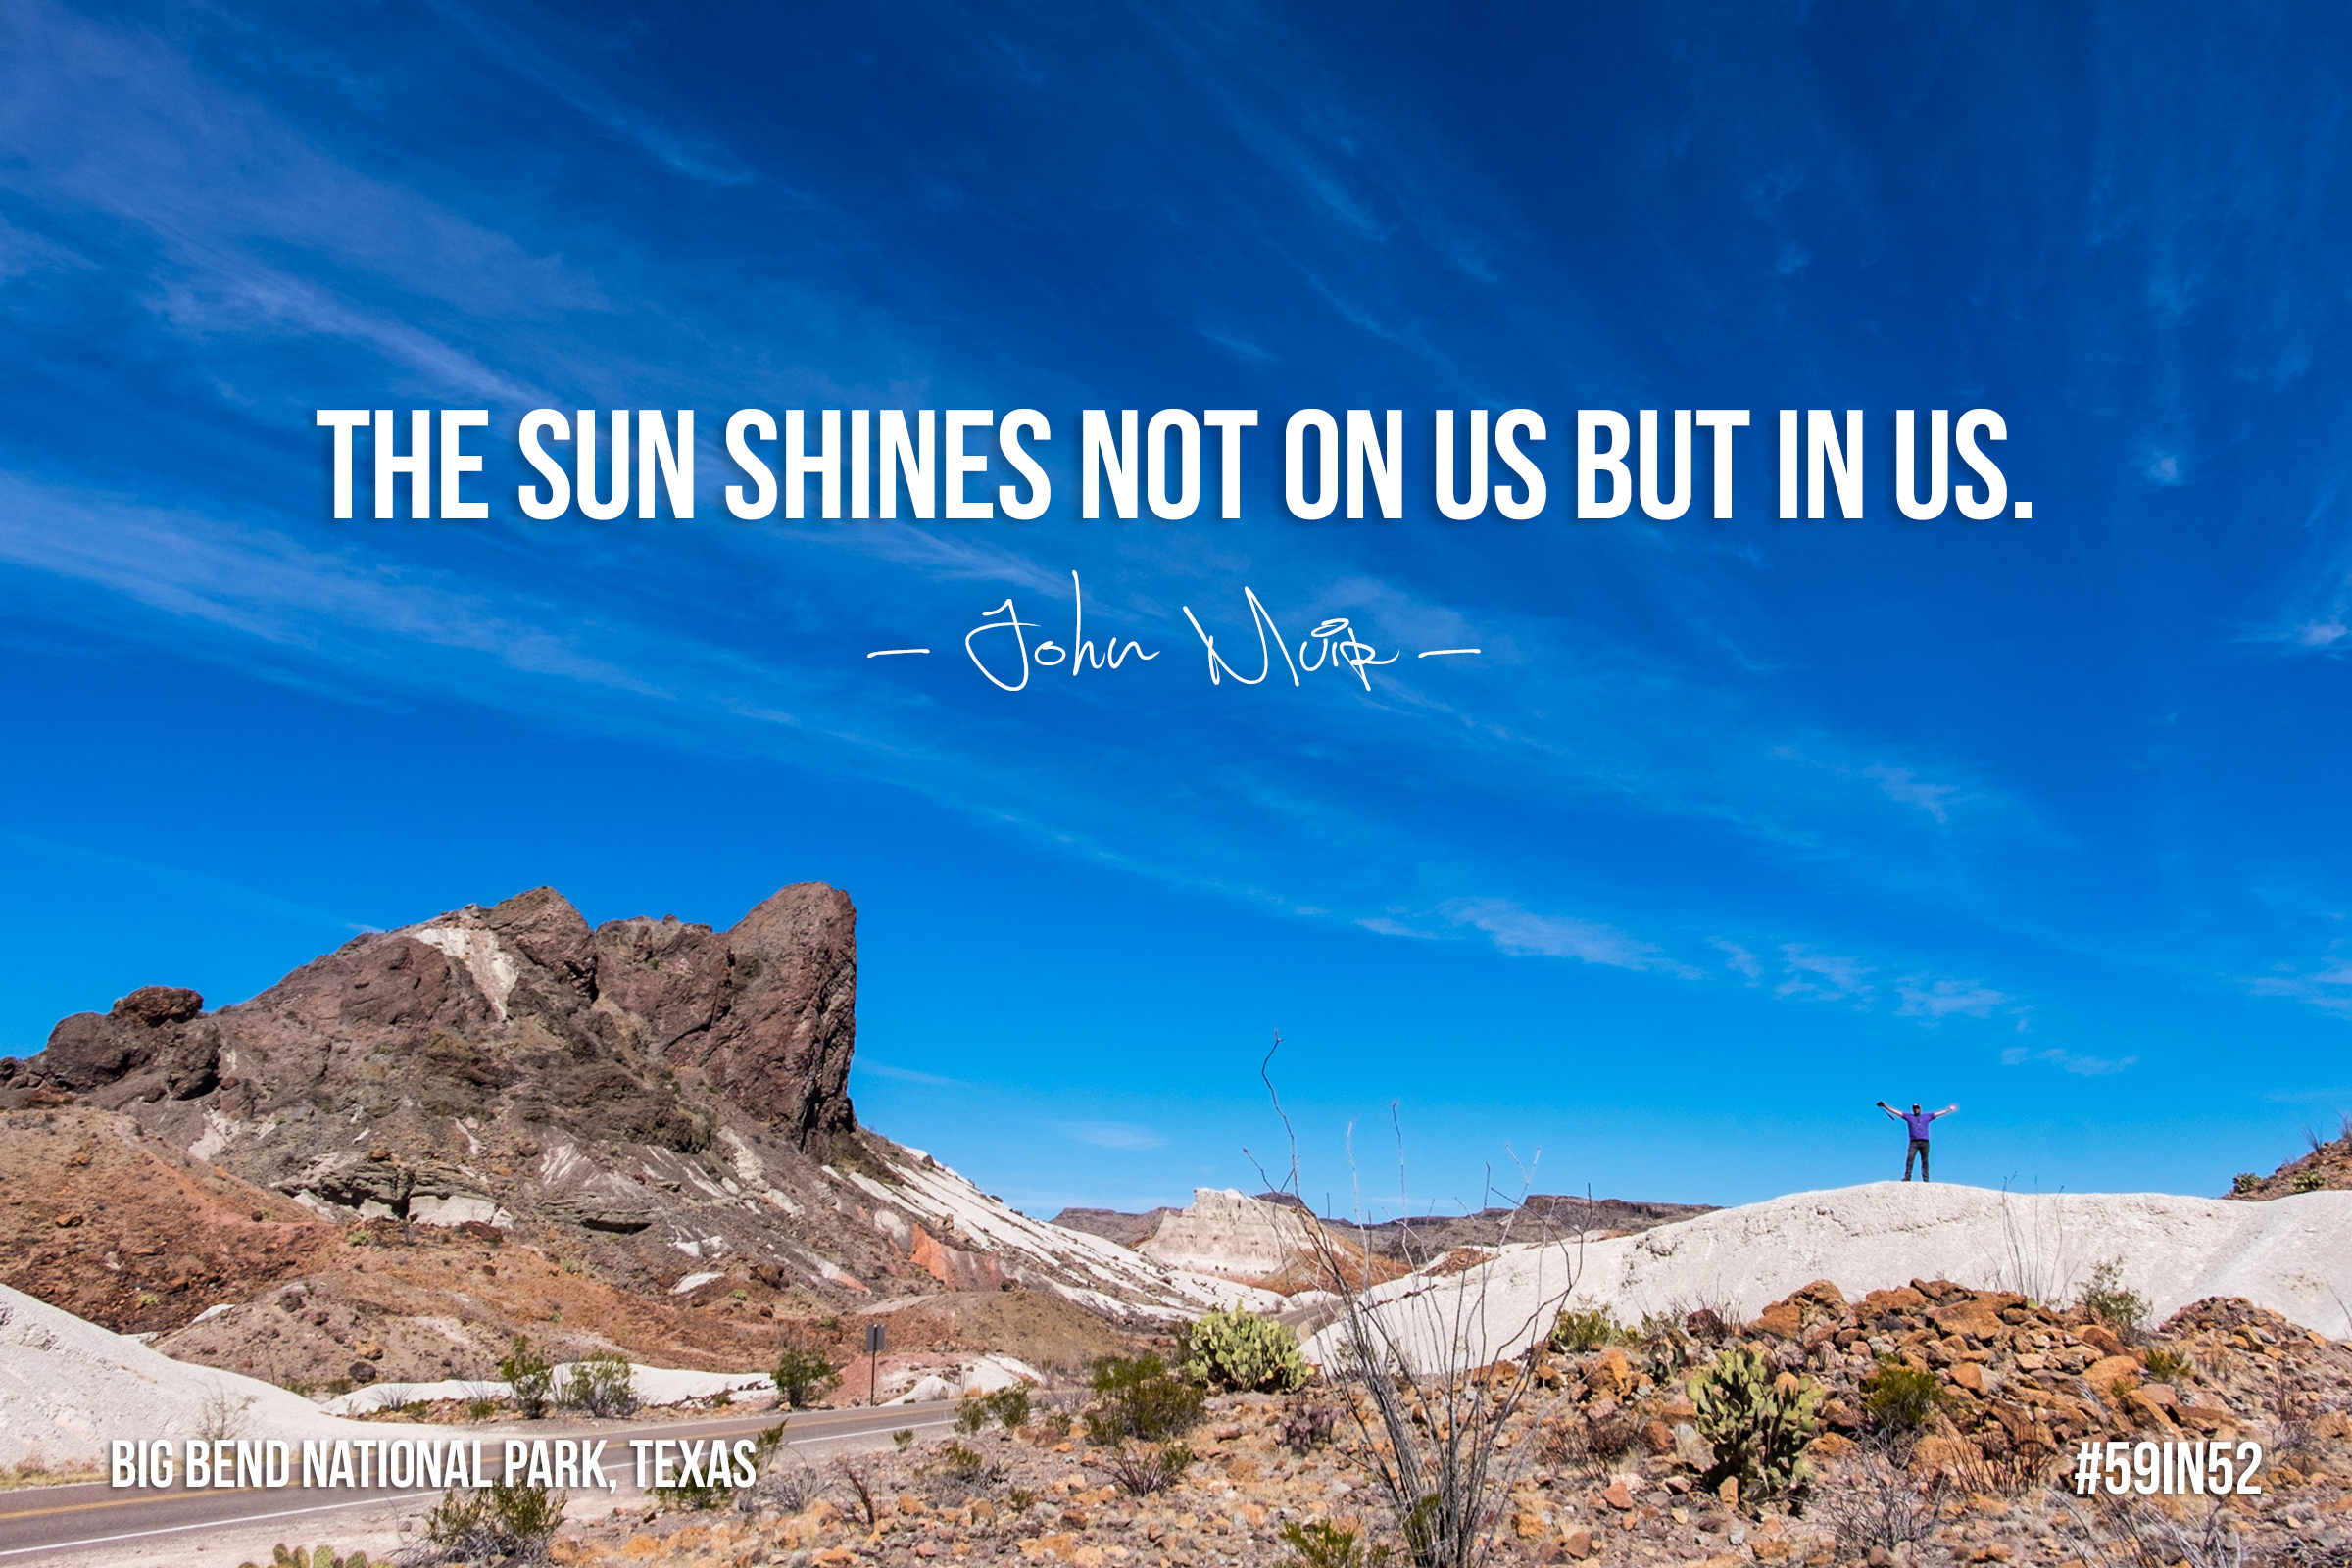 "The sun shines not on us but in us."" - John Muir"